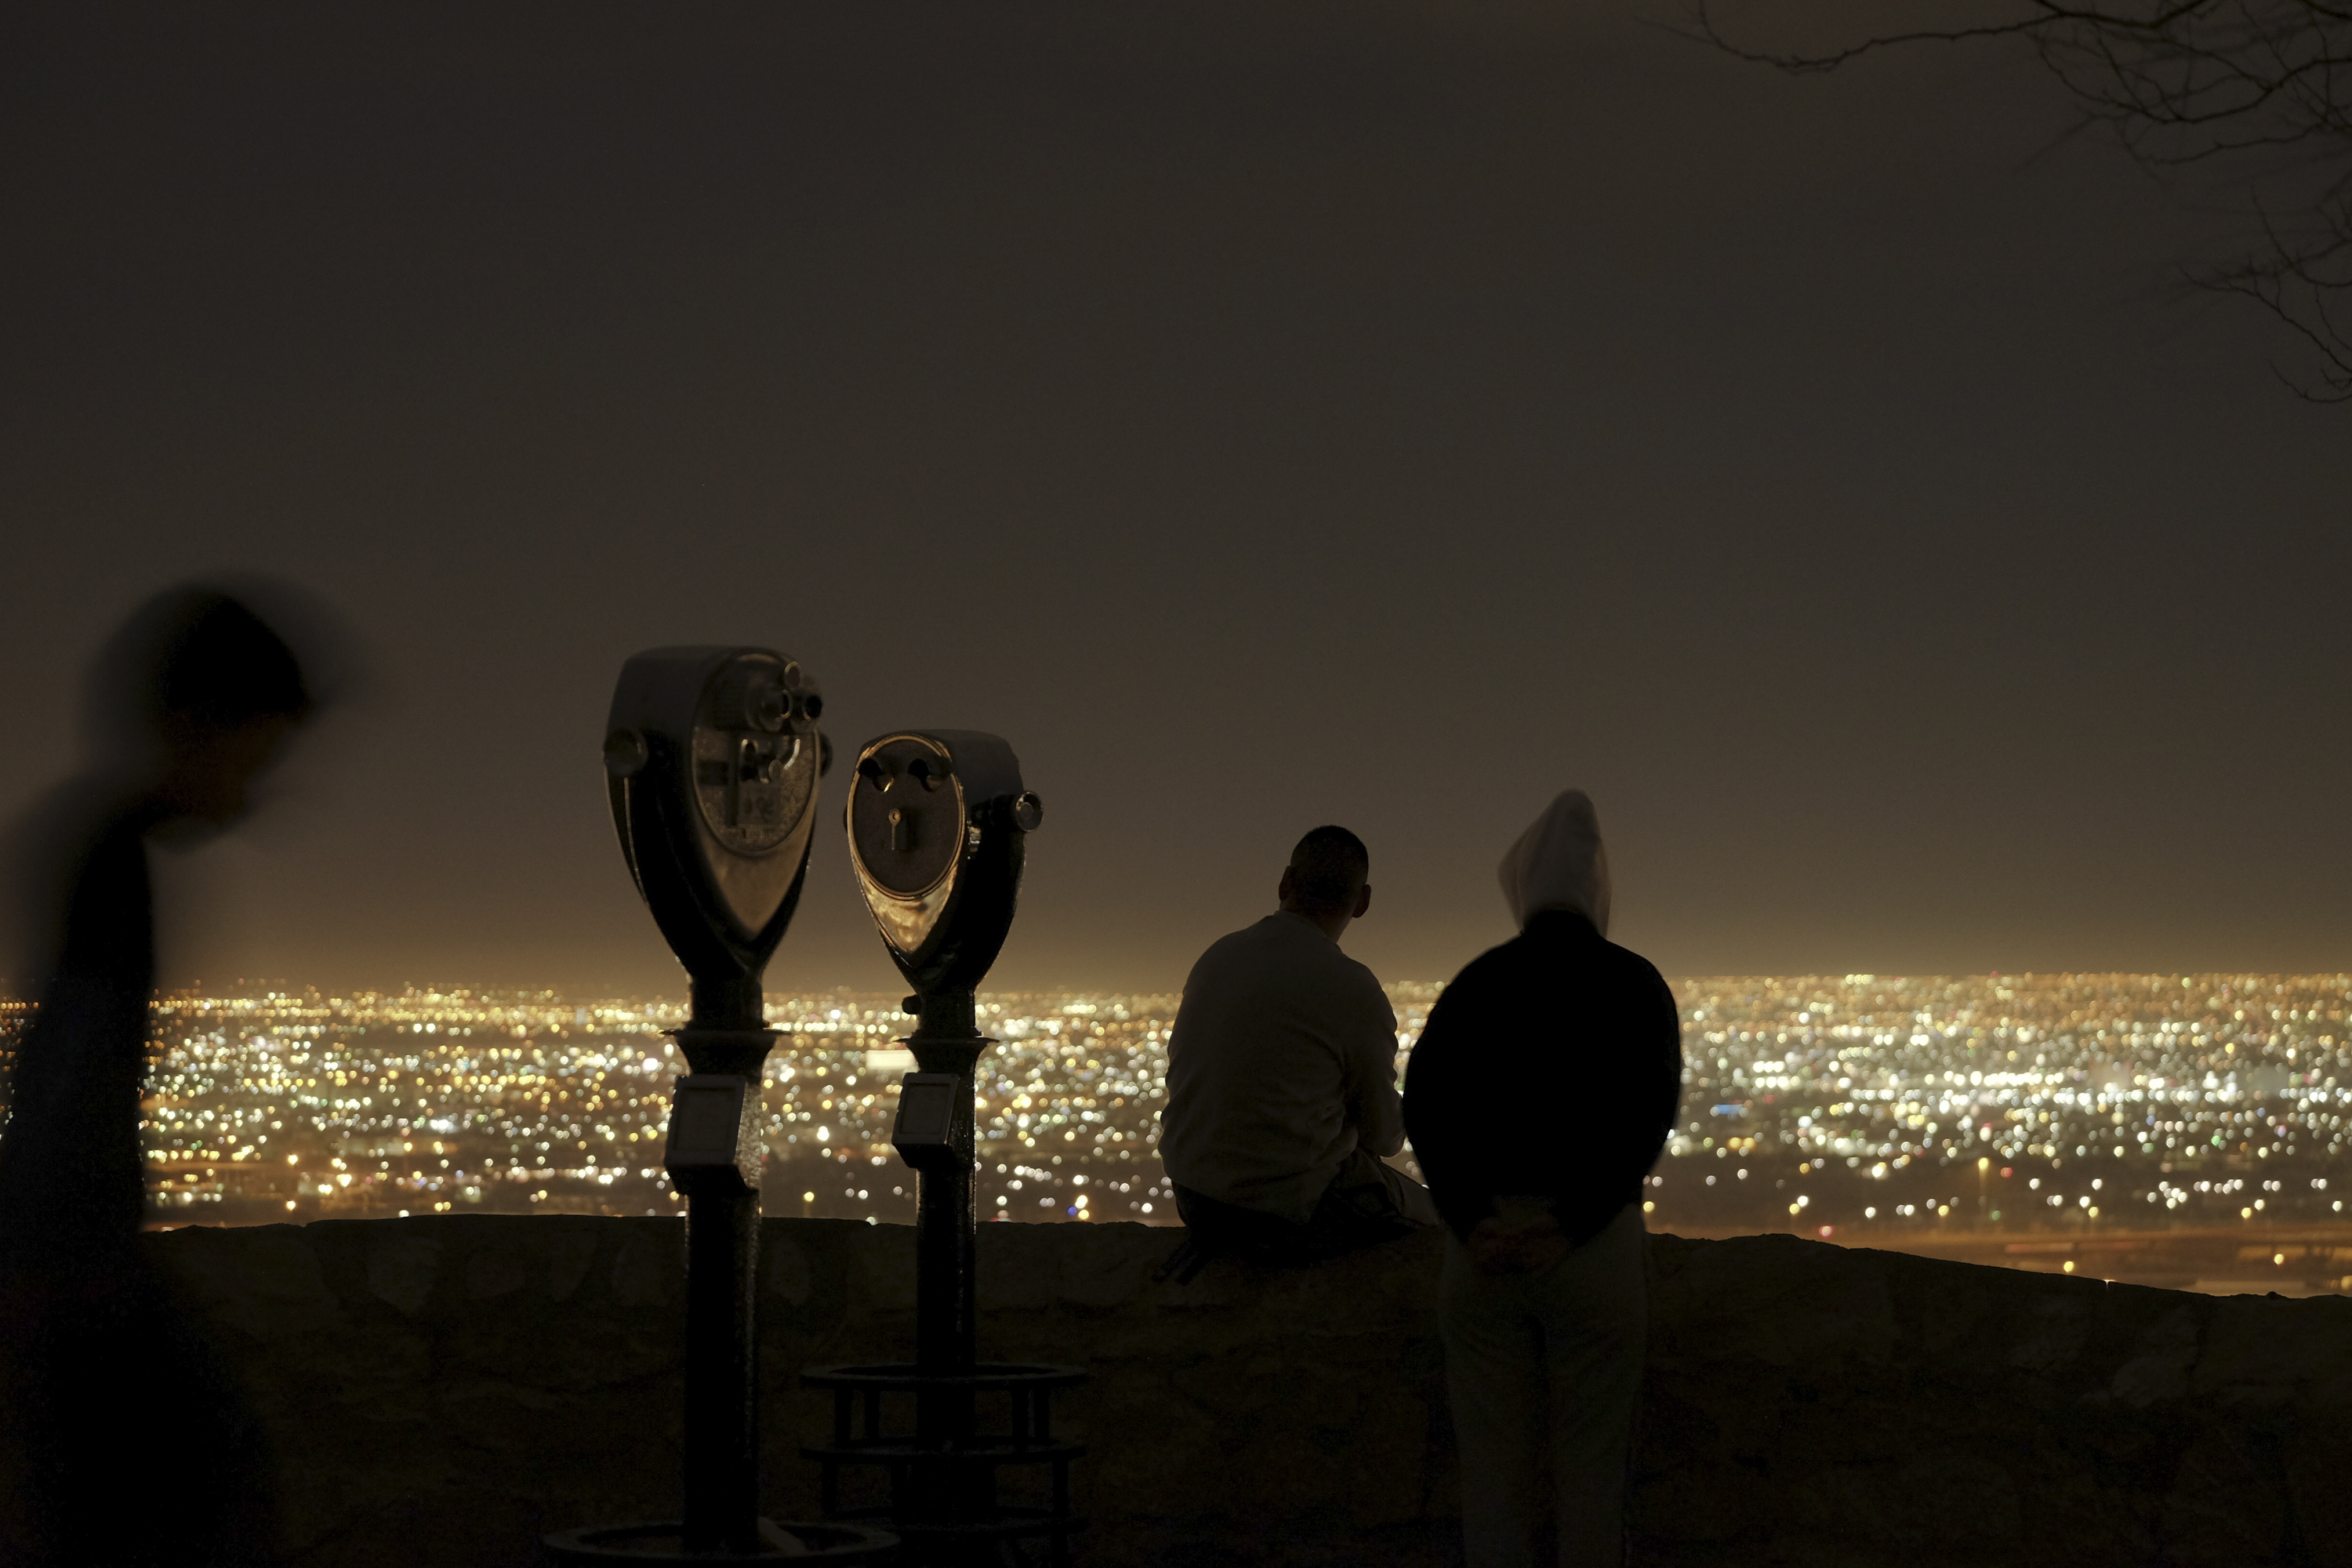 Vistas de El Paso, Texas, y Cuidad Juarez, Mexico. (Jessica Lutz/The New York Times)